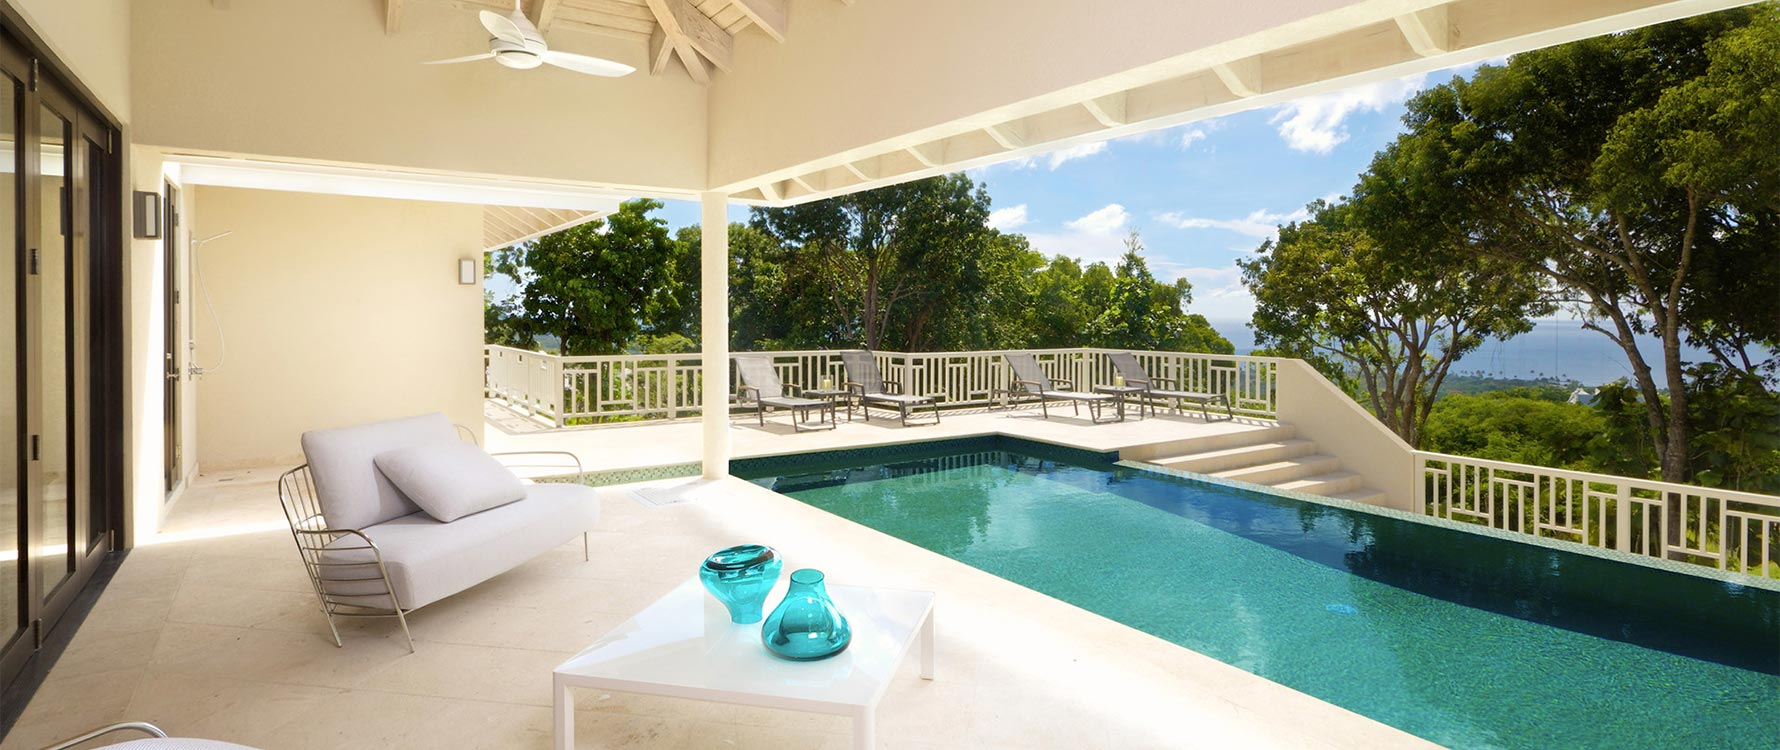 Covered pool deck seating area